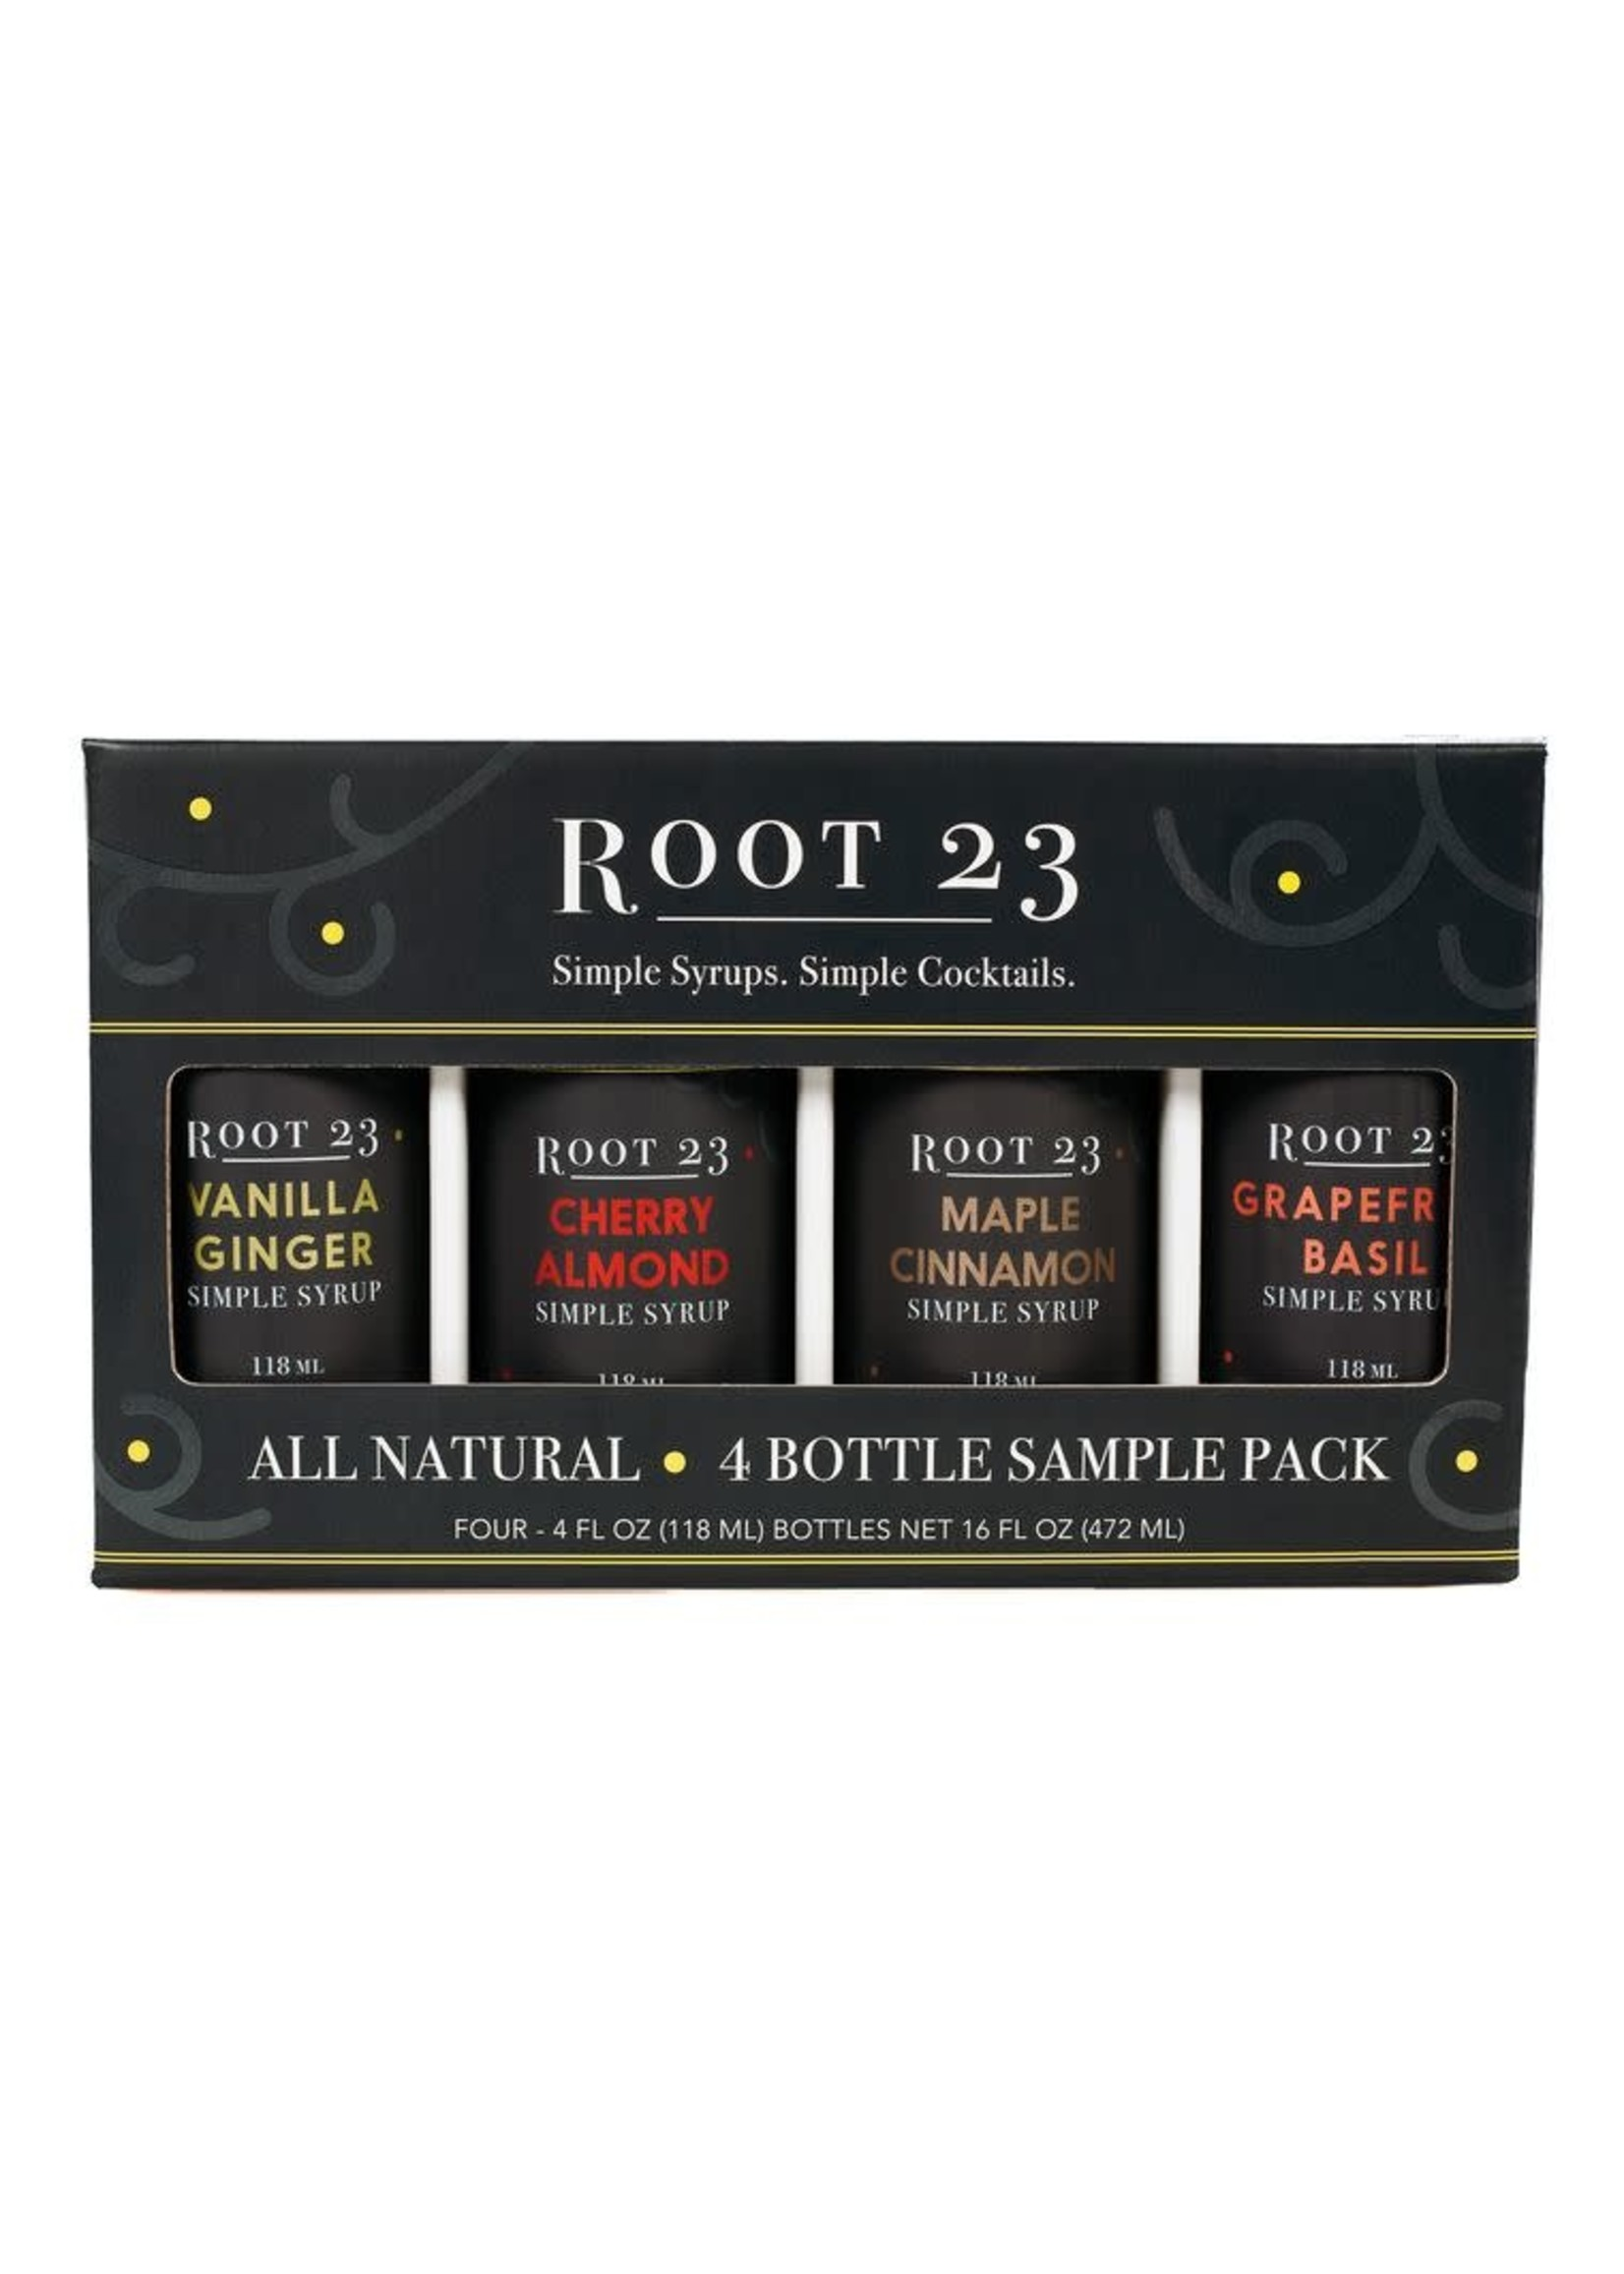 ROOT 23 Classic Cocktail Kit